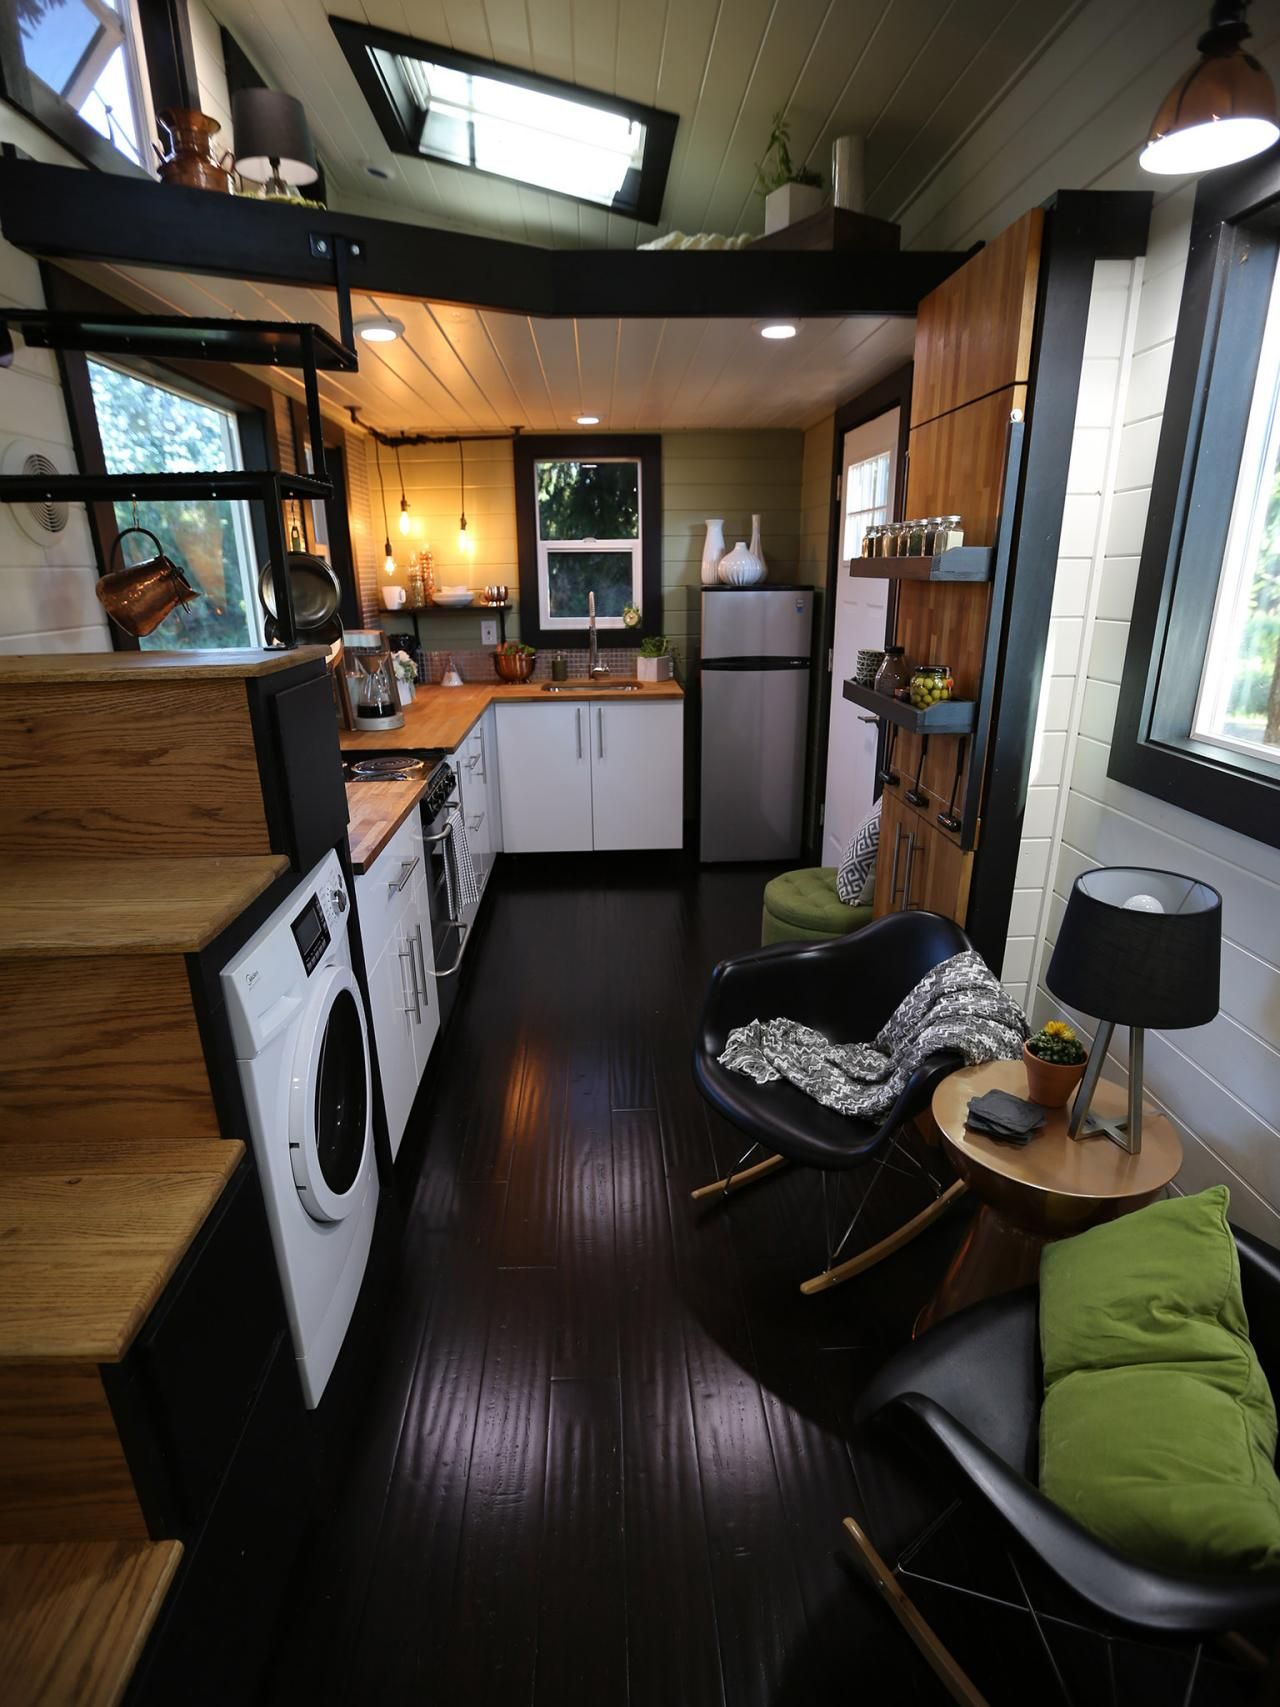 This modern zen tiny house is the perfect fit for a young couple with dreams of